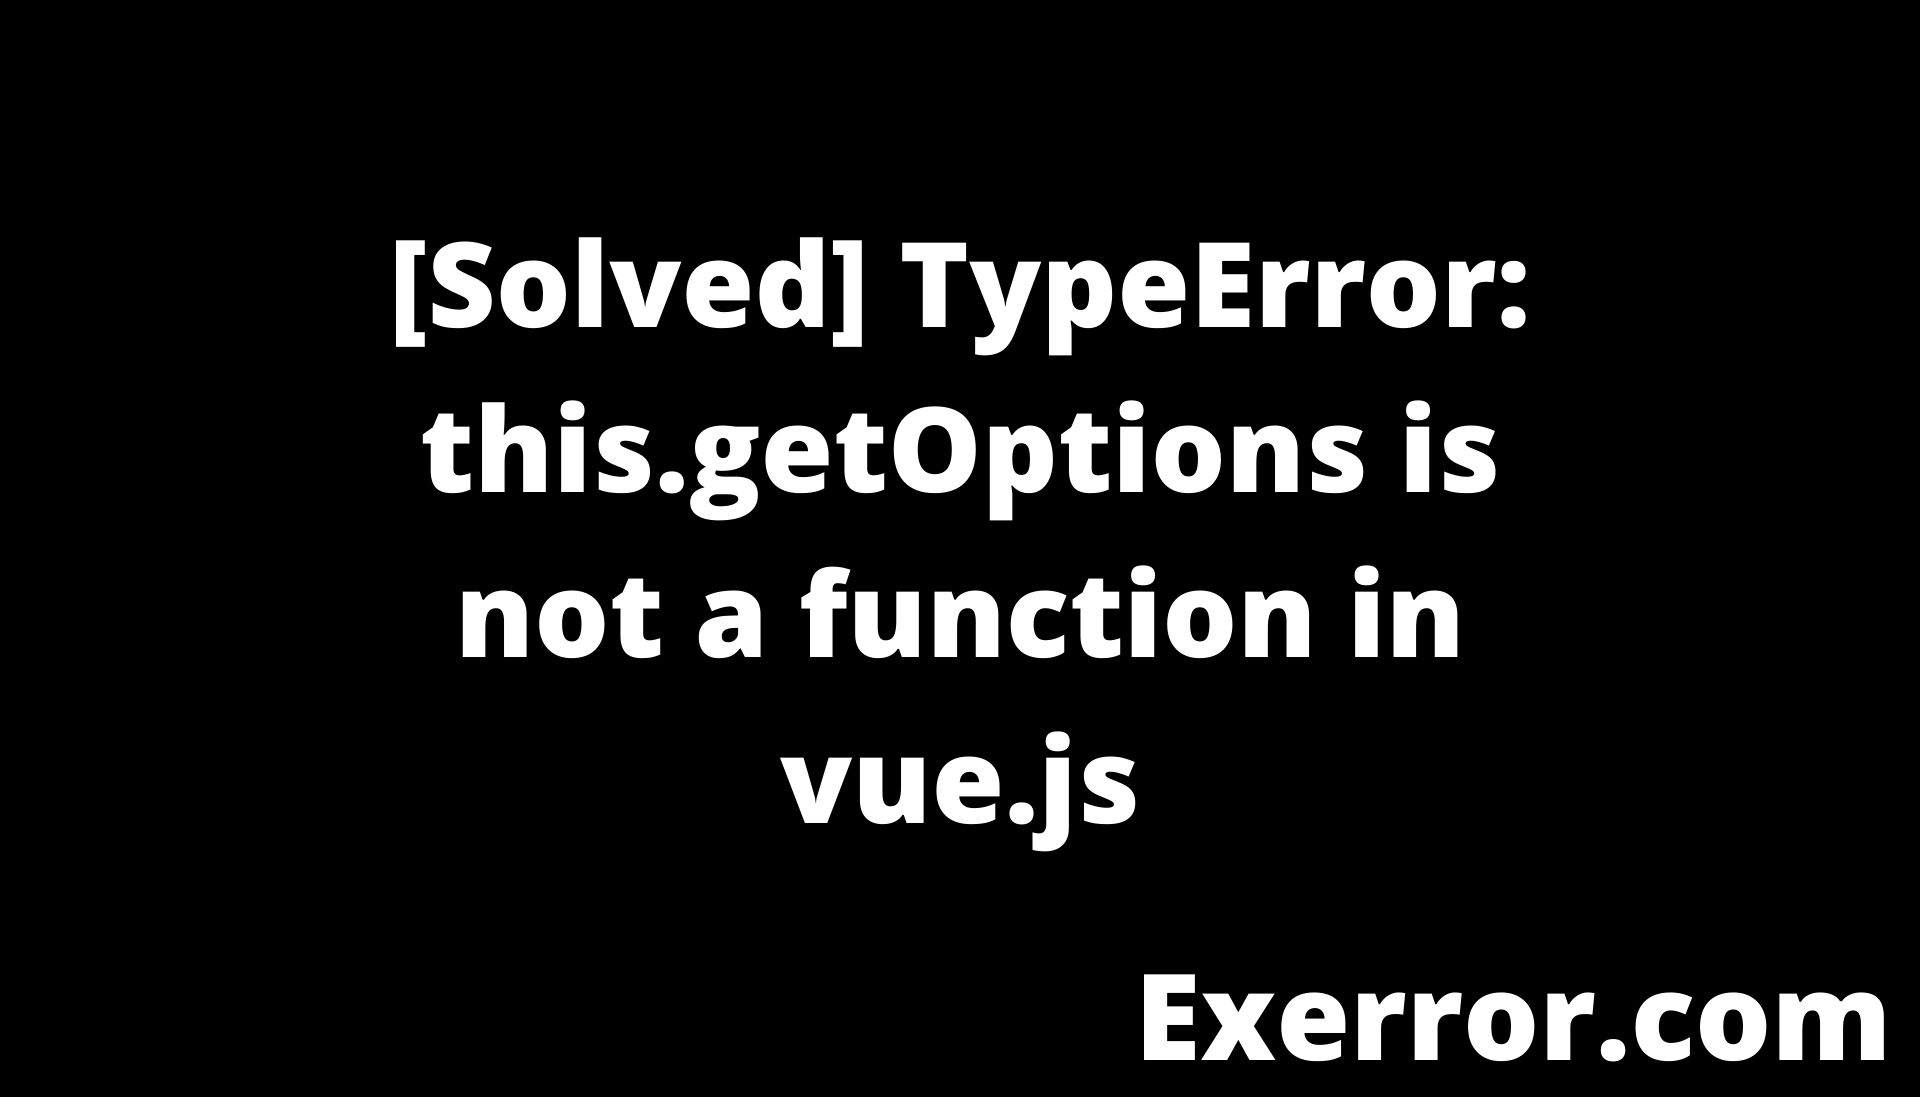 TypeError: this.getOptions is not a function in vue.js, TypeError: this.getOptions is not a function, Syntax Error: TypeError: this.getOptions is not a function